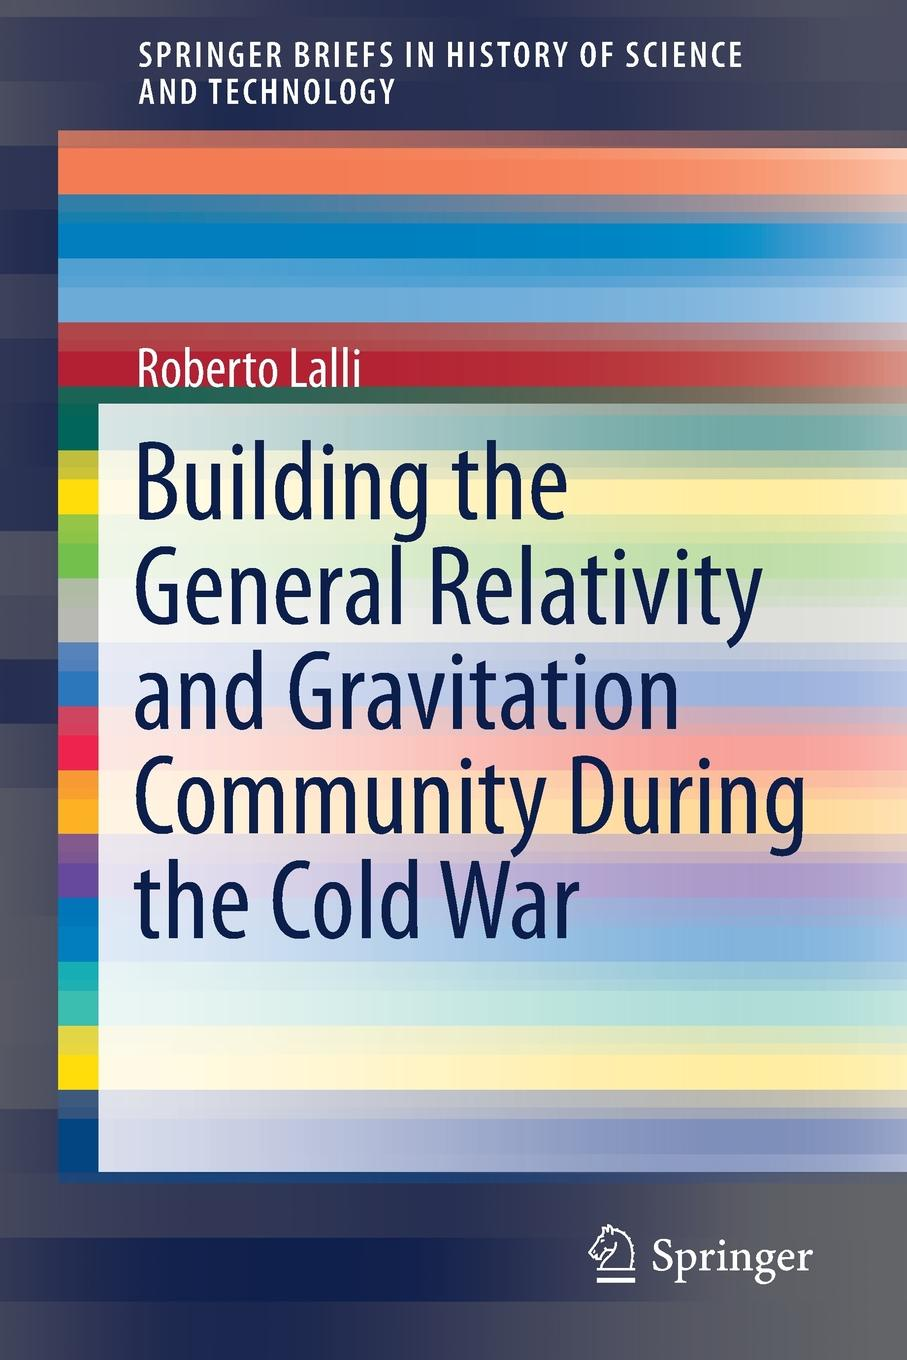 Roberto Lalli Building the General Relativity and Gravitation Community During the Cold War exterminism and cold war